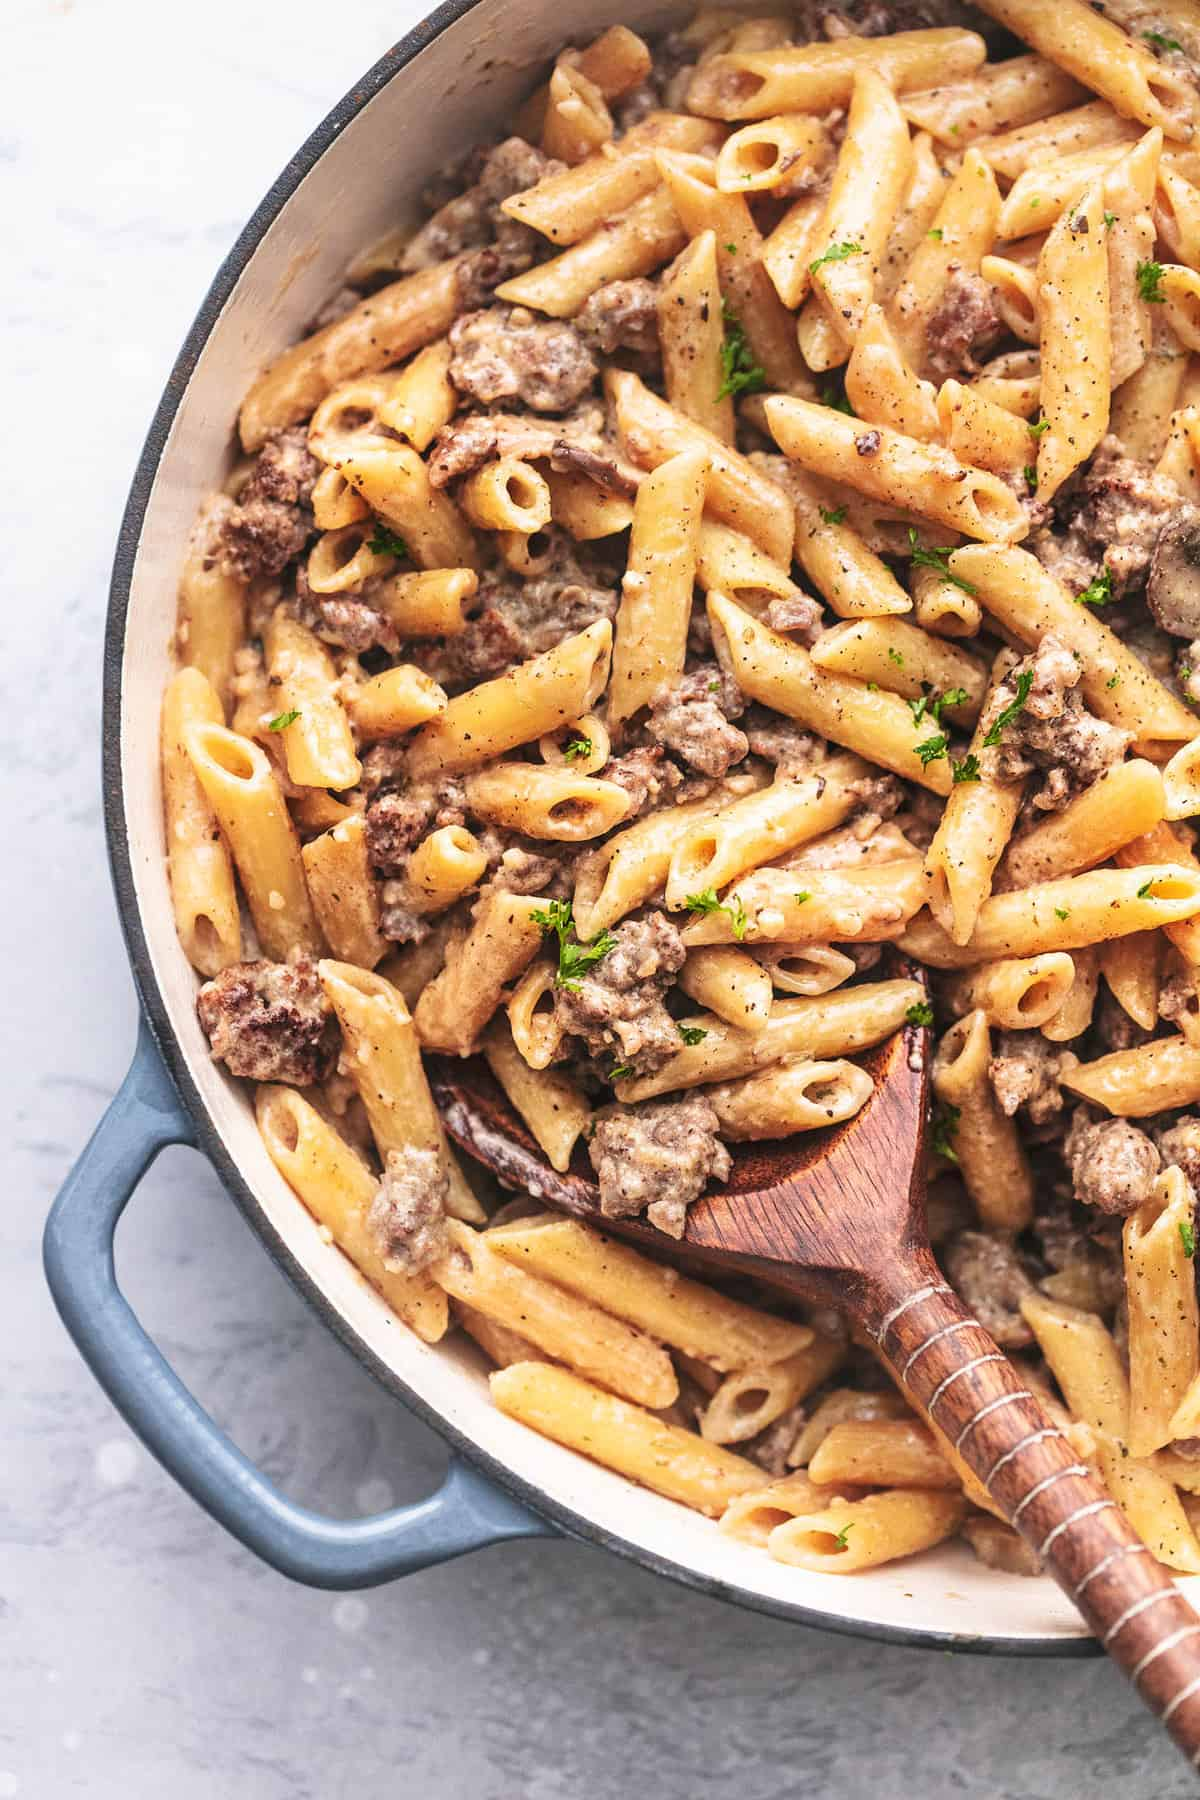 close up top view of creamy sausage and penne noodle pasta in a skillet with a wooden spoon.